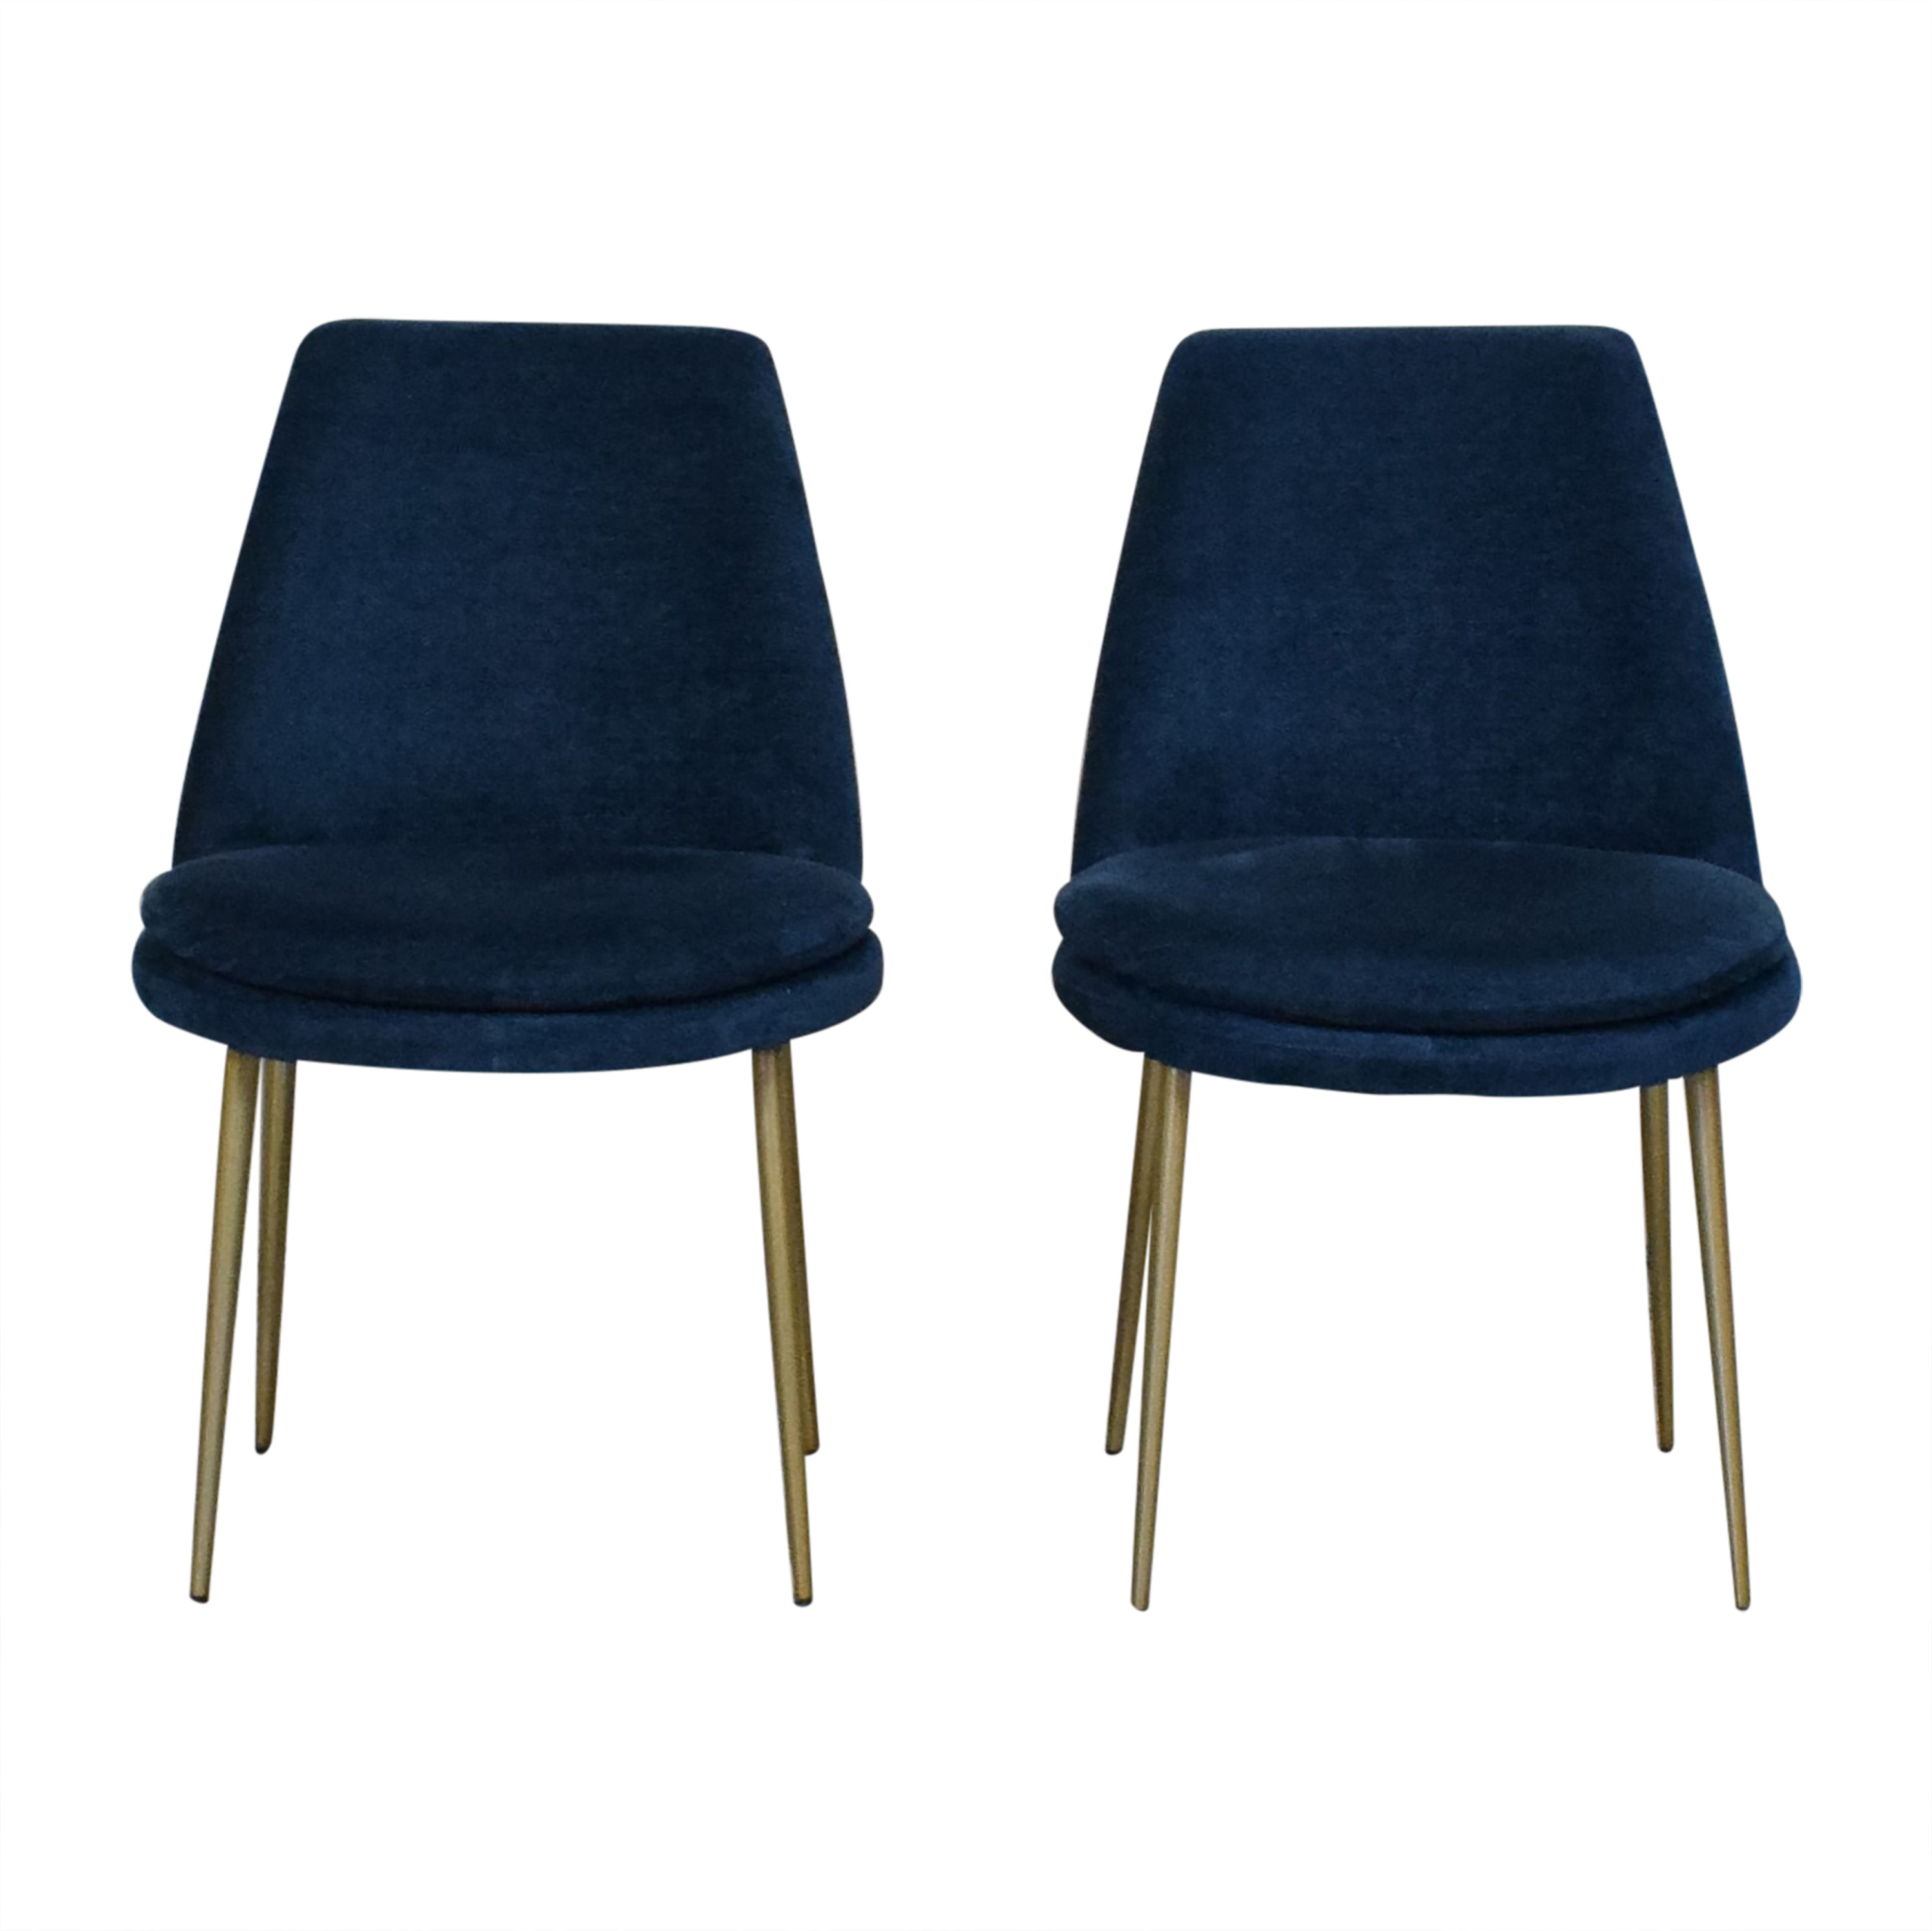 West Elm West Elm Mid-Century Upholstered Dining Chairs nj